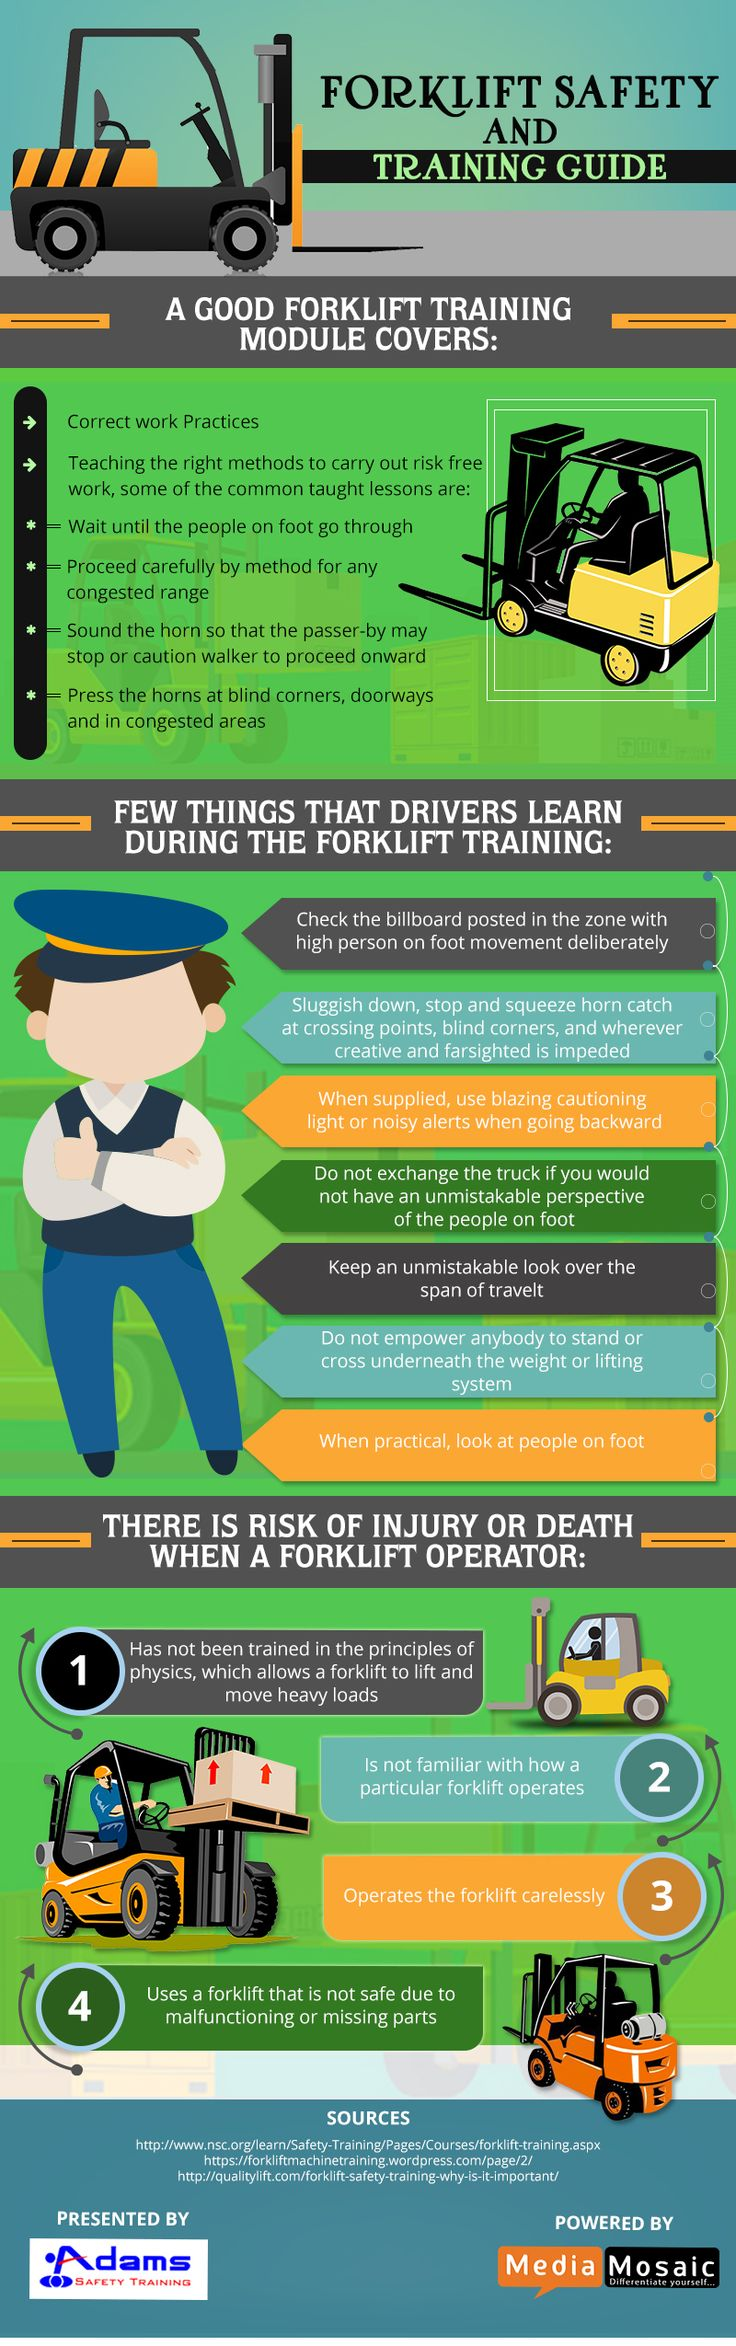 "The infographic titled, ""Forklift Safety and Training Guide"" describes the module of forklift training, things to learn during forklift training and risk of injury or death to a forklift operator.     For more information visit at: https://www.adamssafety.com/a-guide-related-to-forklift-safety-and-training-infographic/"